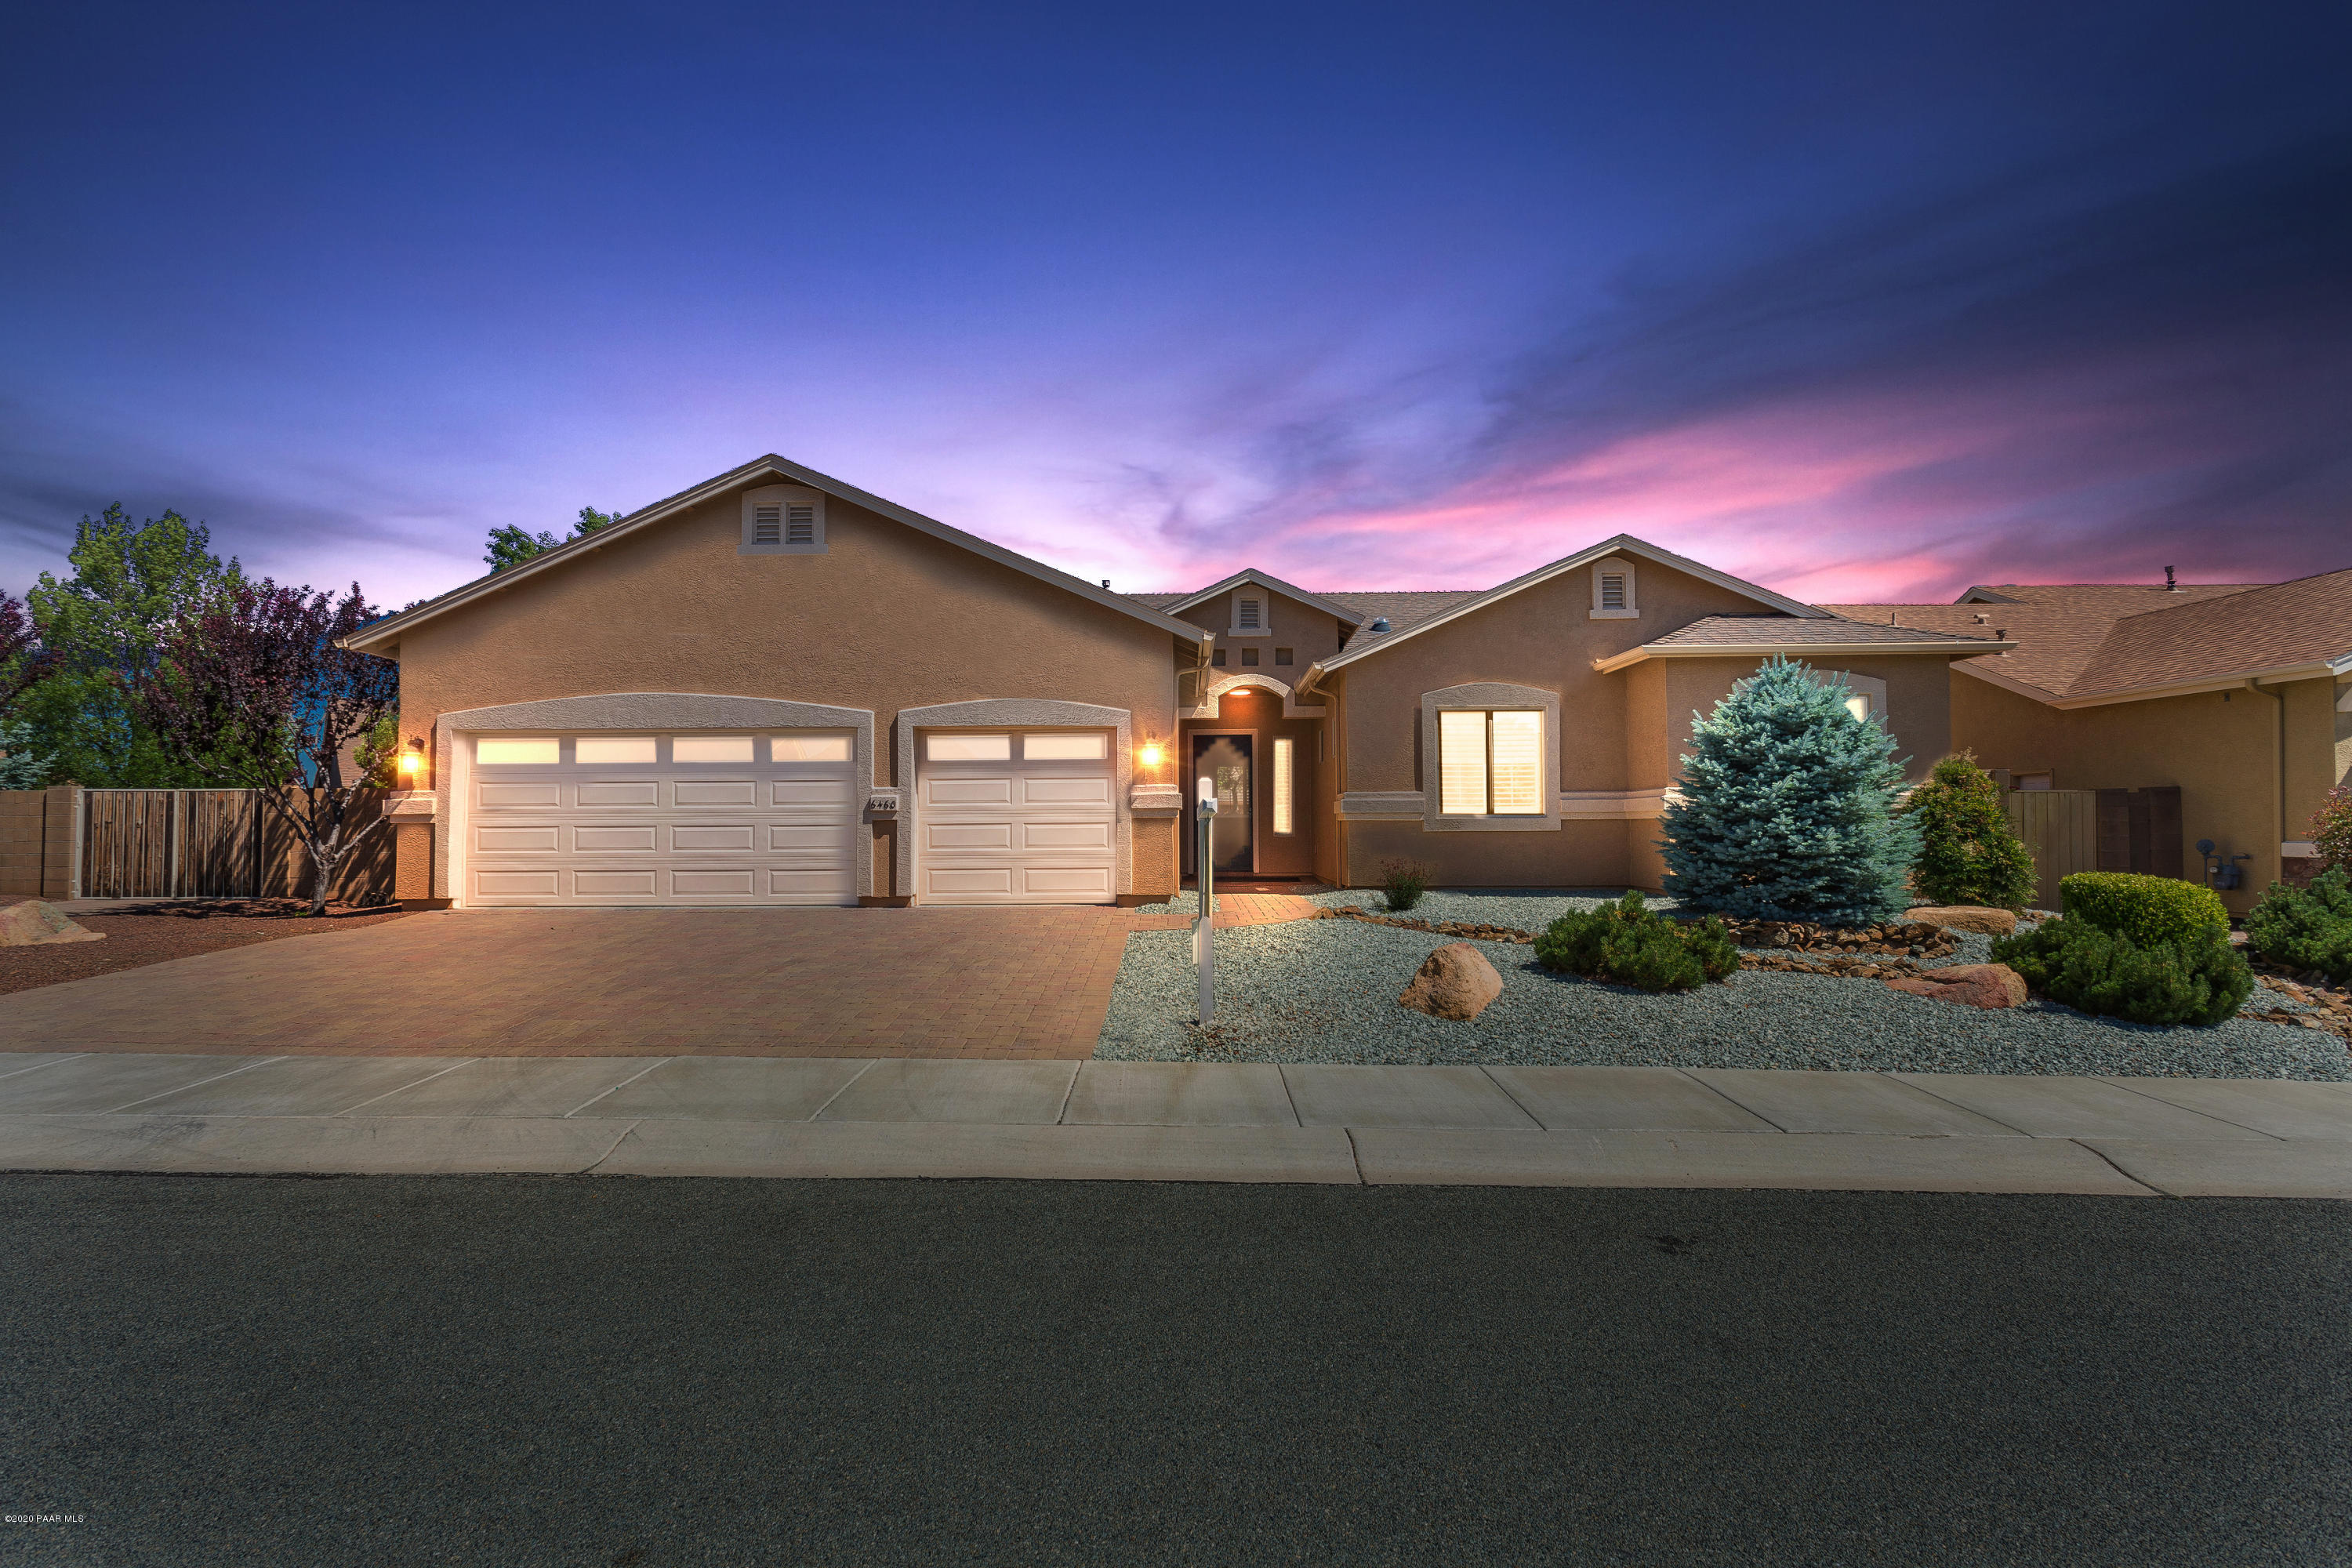 Photo of 6460 Deacon, Prescott Valley, AZ 86314